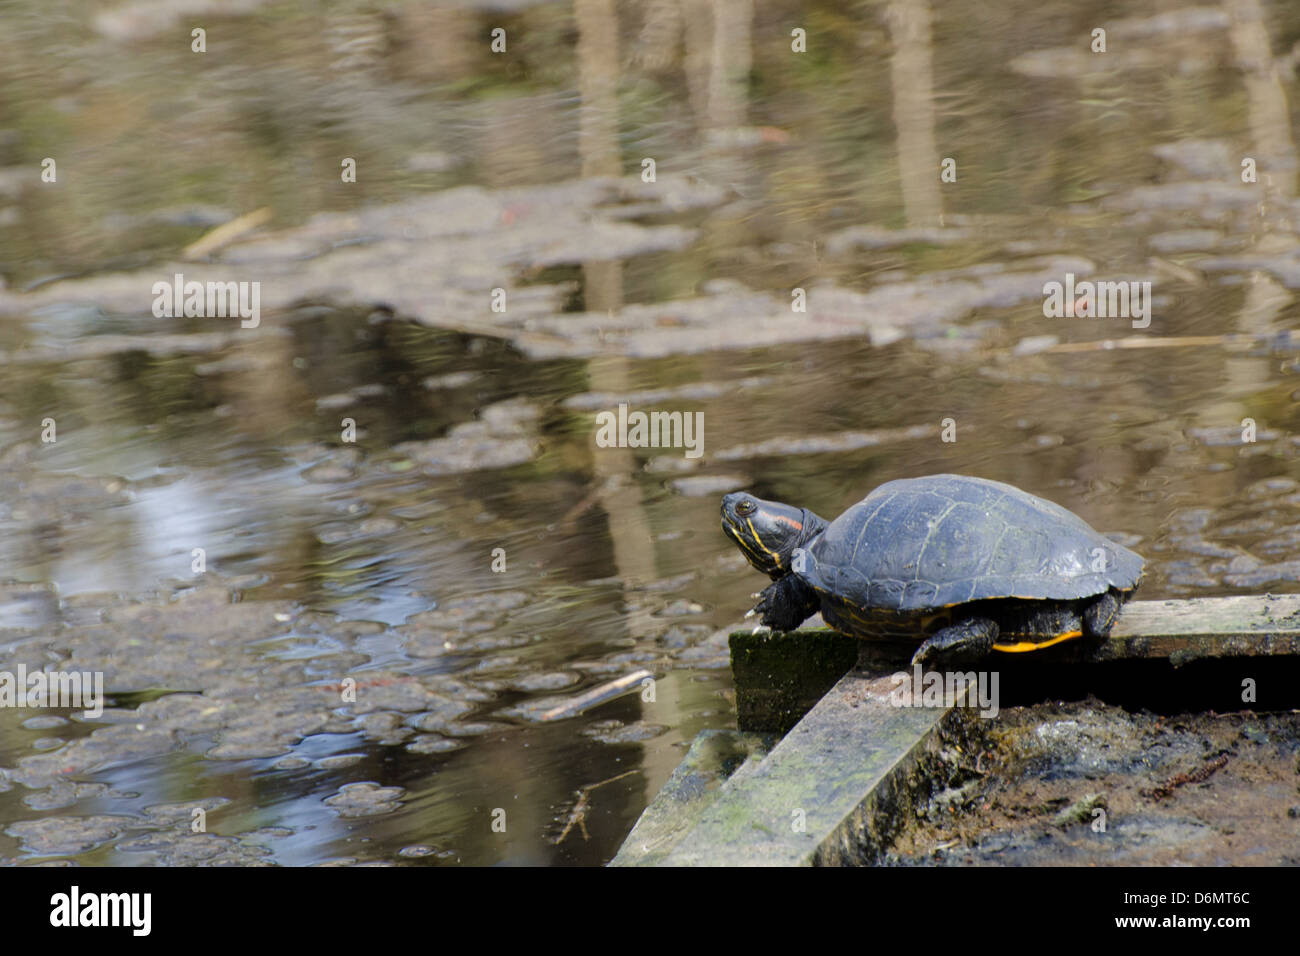 Basking terrapin on regents canal - Stock Image